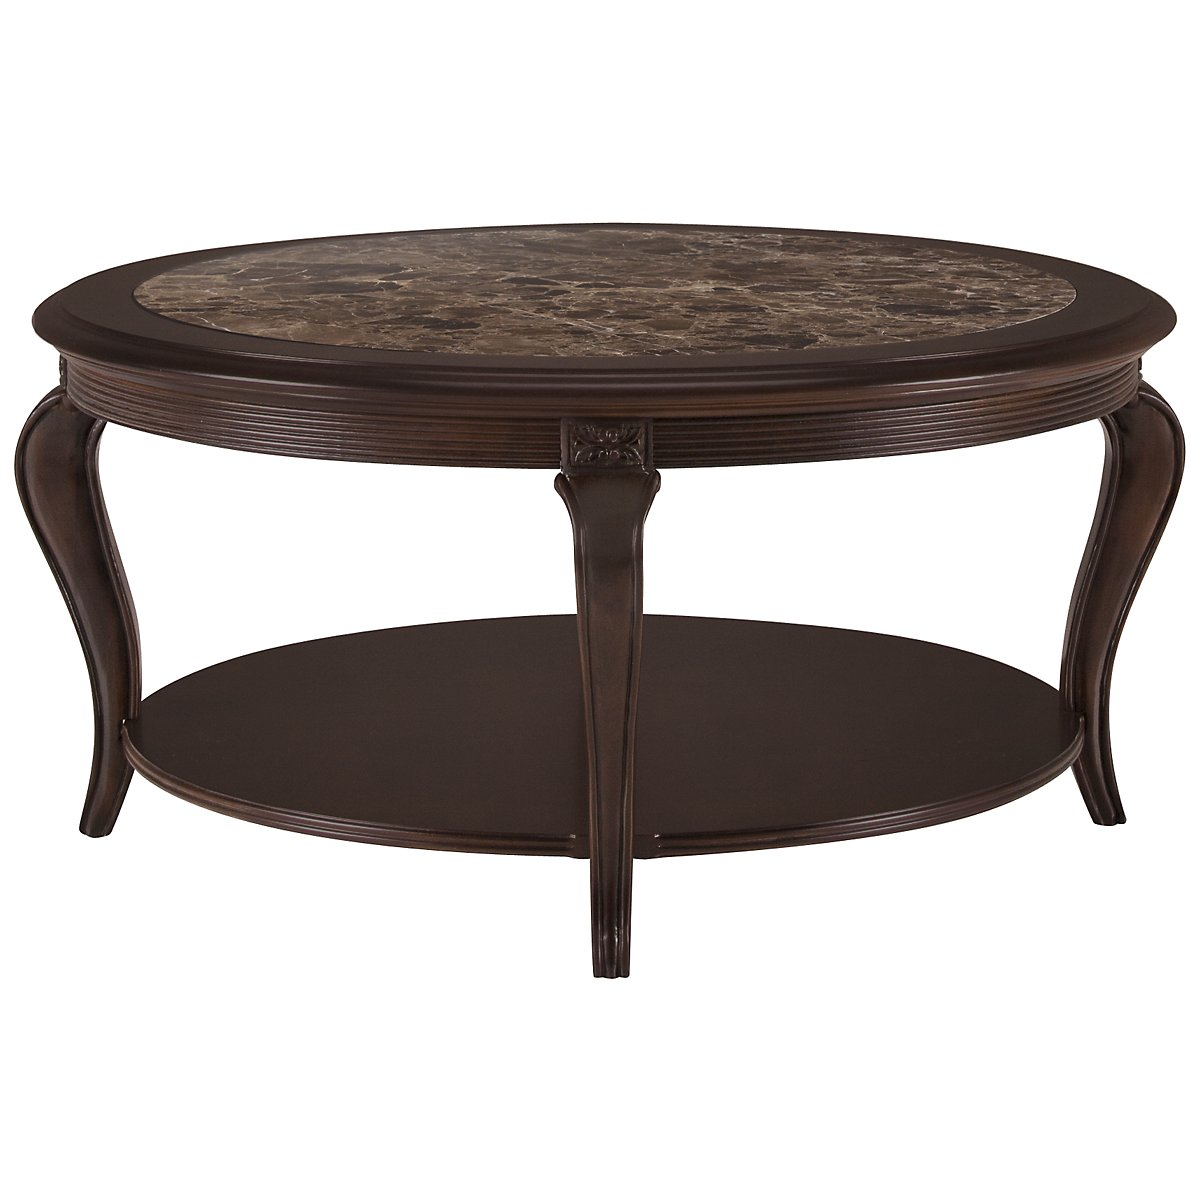 Belmont Dark Tone Marble Round Coffee Table